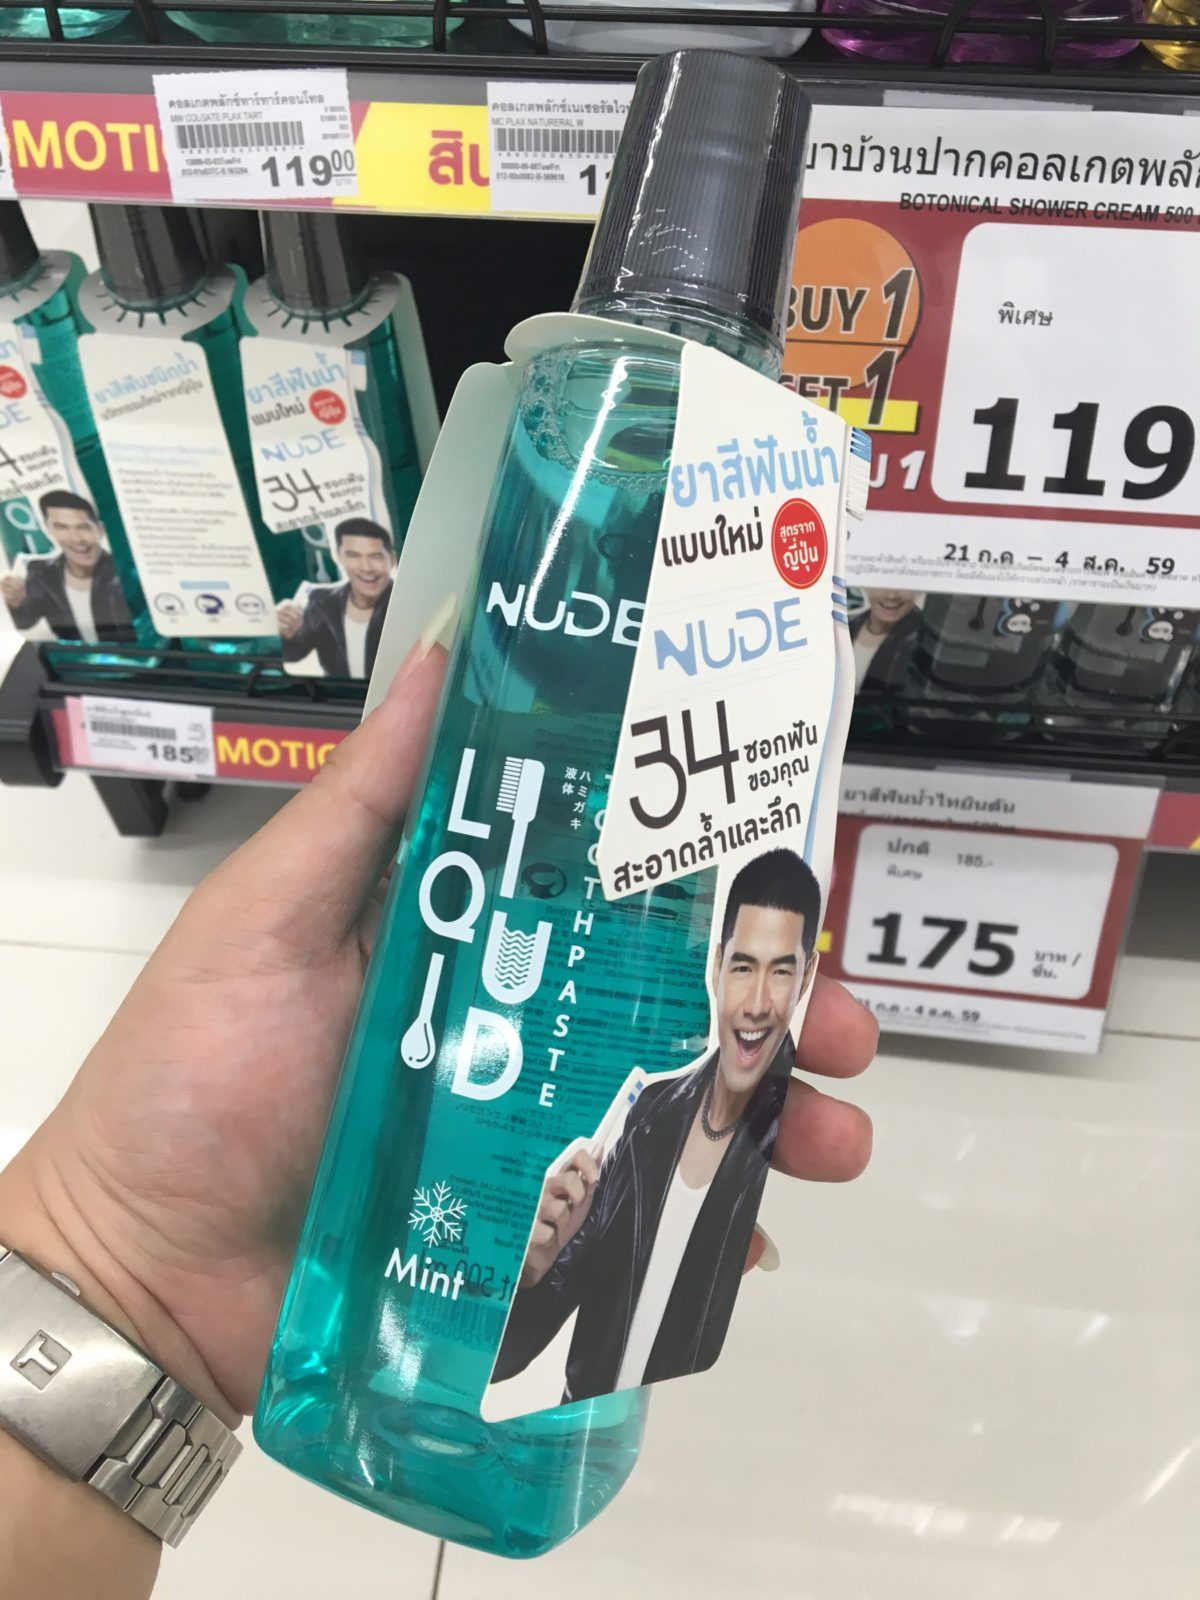 Nude Liquid Toothpaste is selling in Thailand now